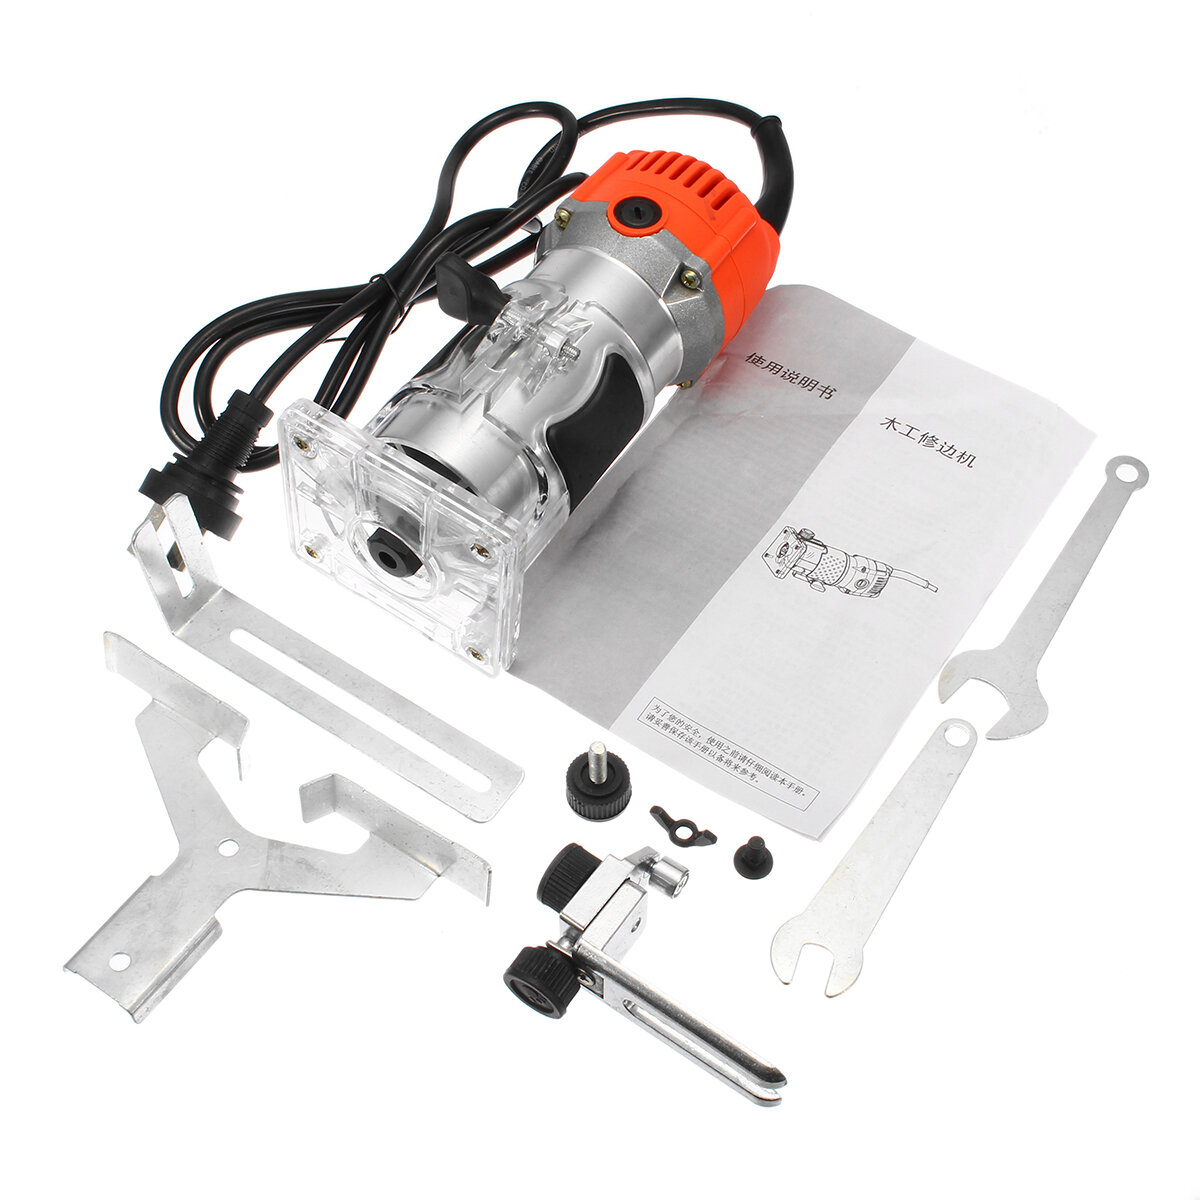 110V/220V 1200W 6.35mm Wood Laminate Palm Router Electric Hand Trimmer Edge Joiners...